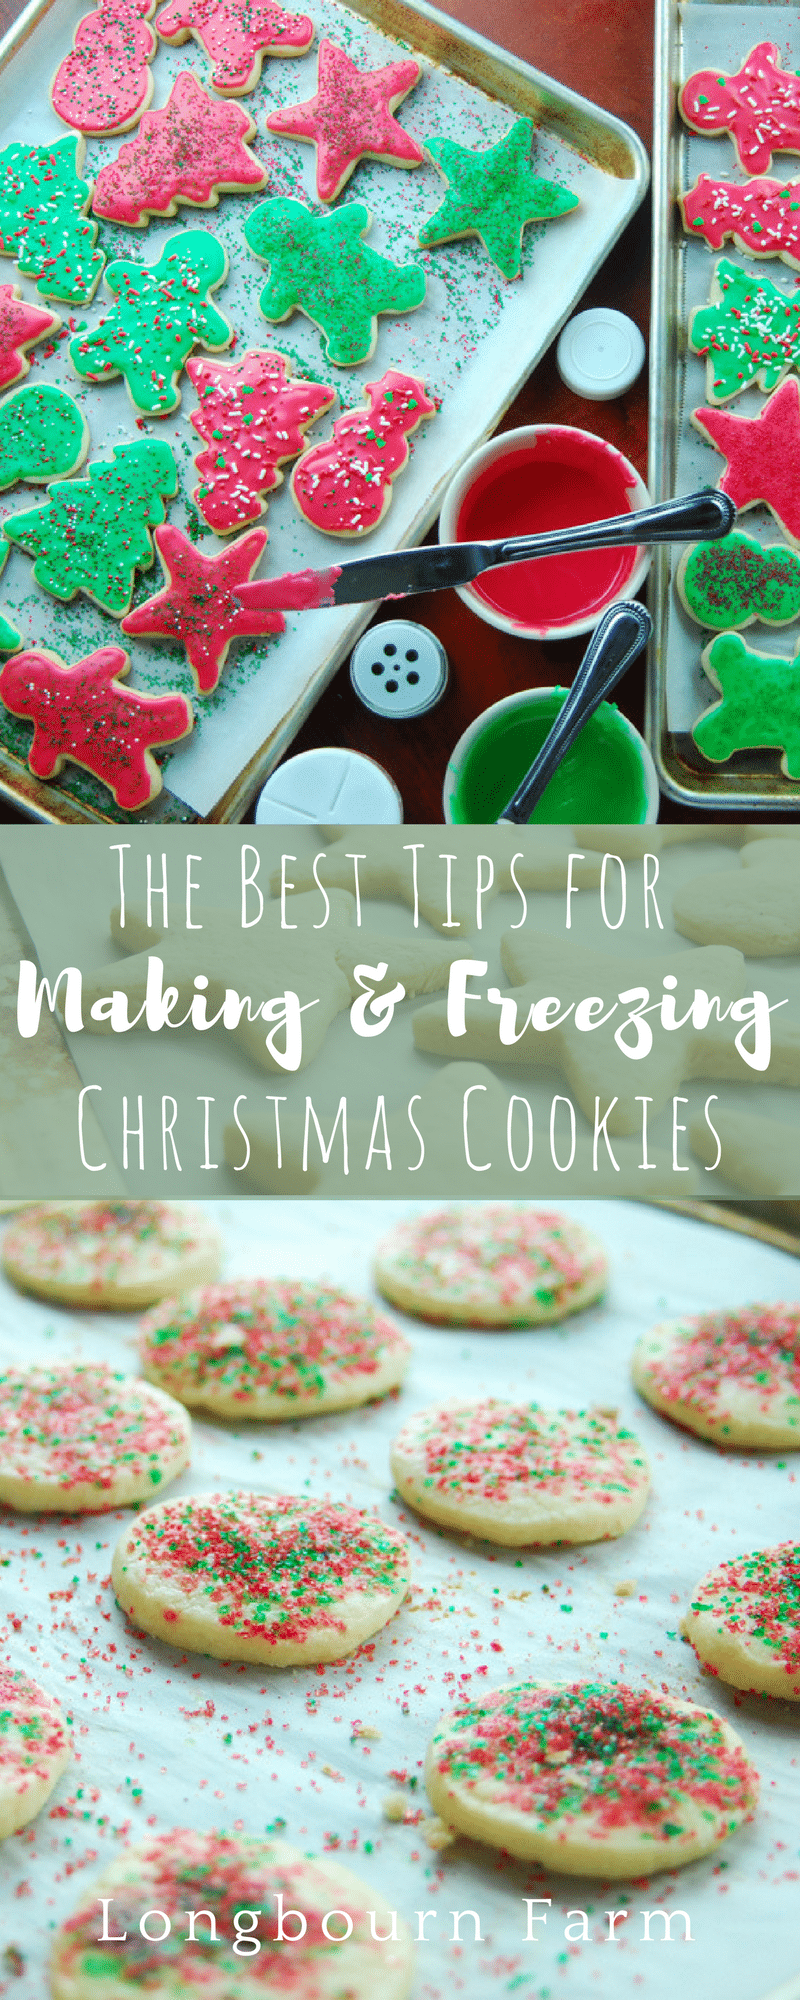 Get tips for making, storing, and freezing the best Christmas cookie recipes! These tips make getting ready for any family Christmas party a breeze! via @longbournfarm